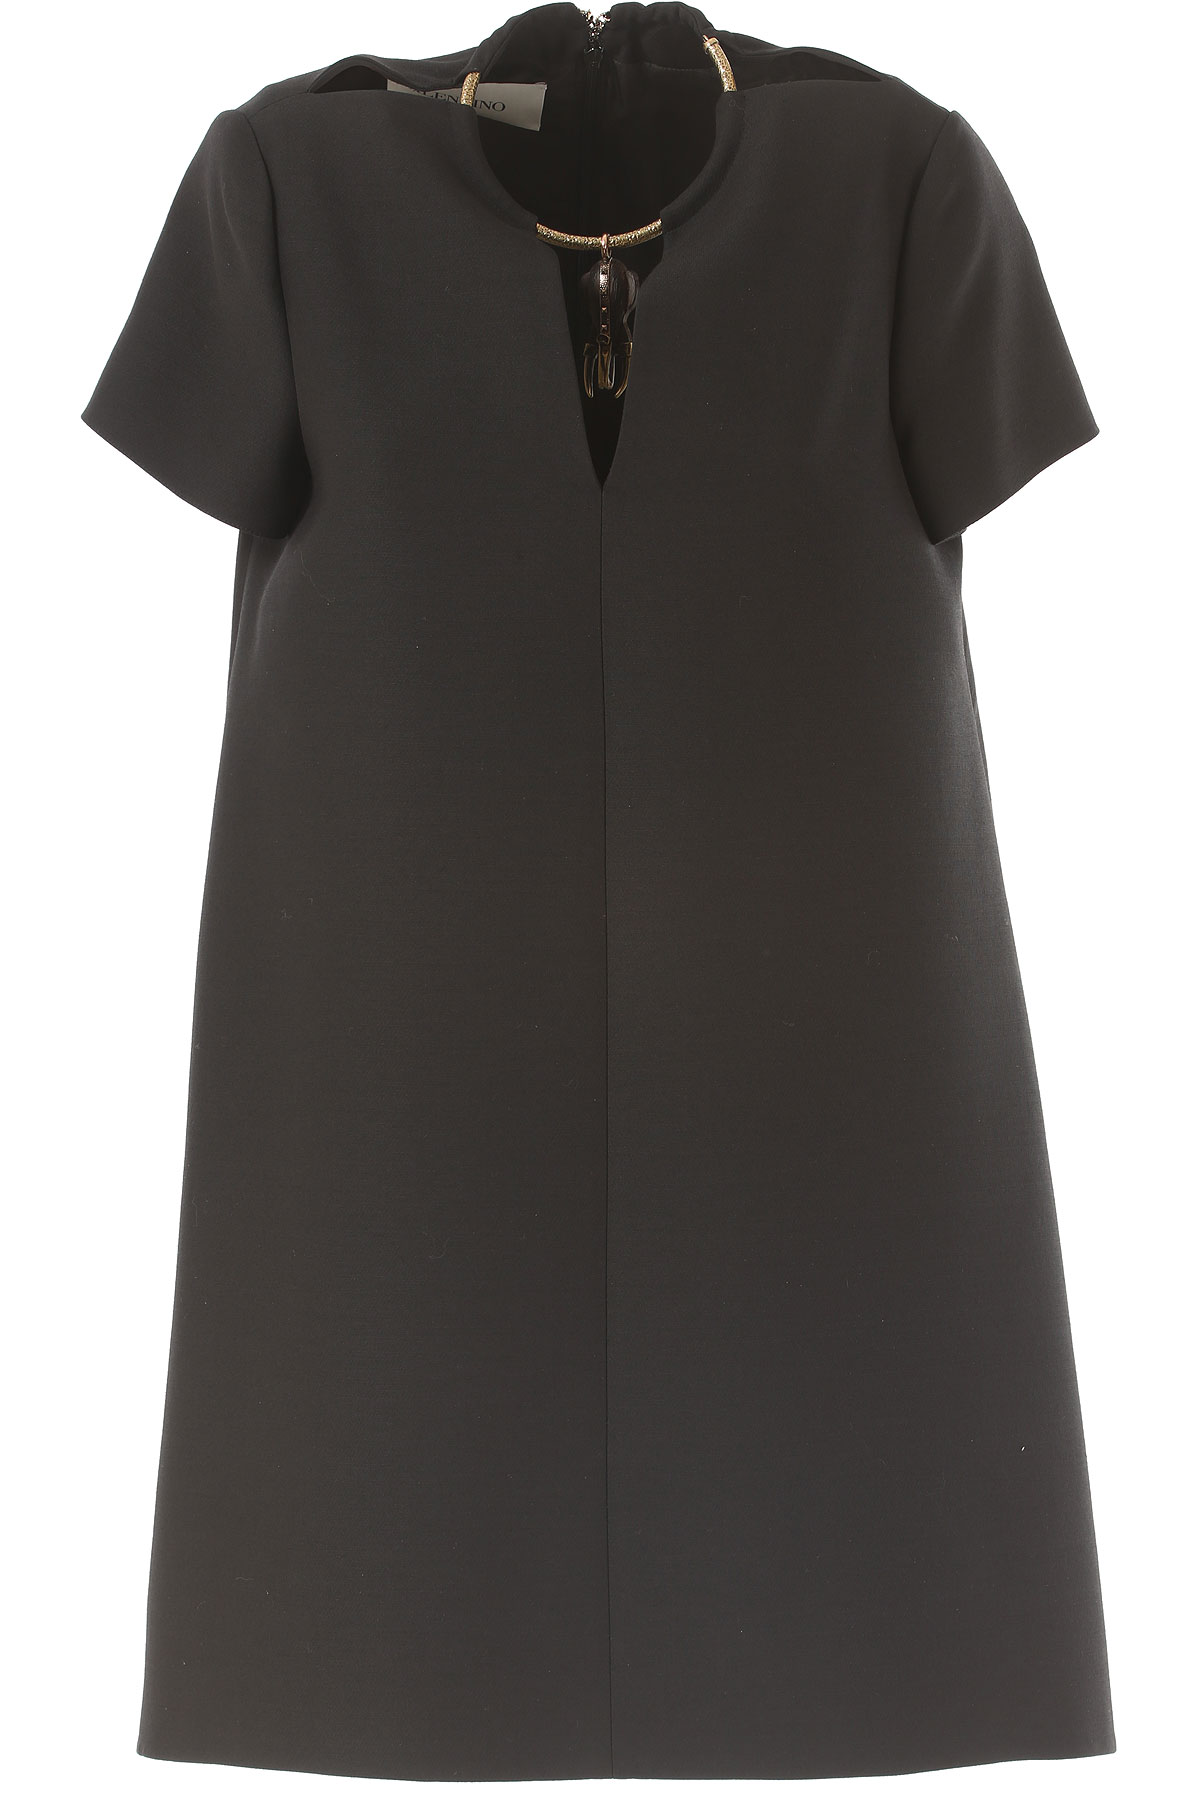 Valentino Dress for Women, Evening Cocktail Party On Sale in Outlet, Black, Virgin, 2017, 6 8 USA-381658